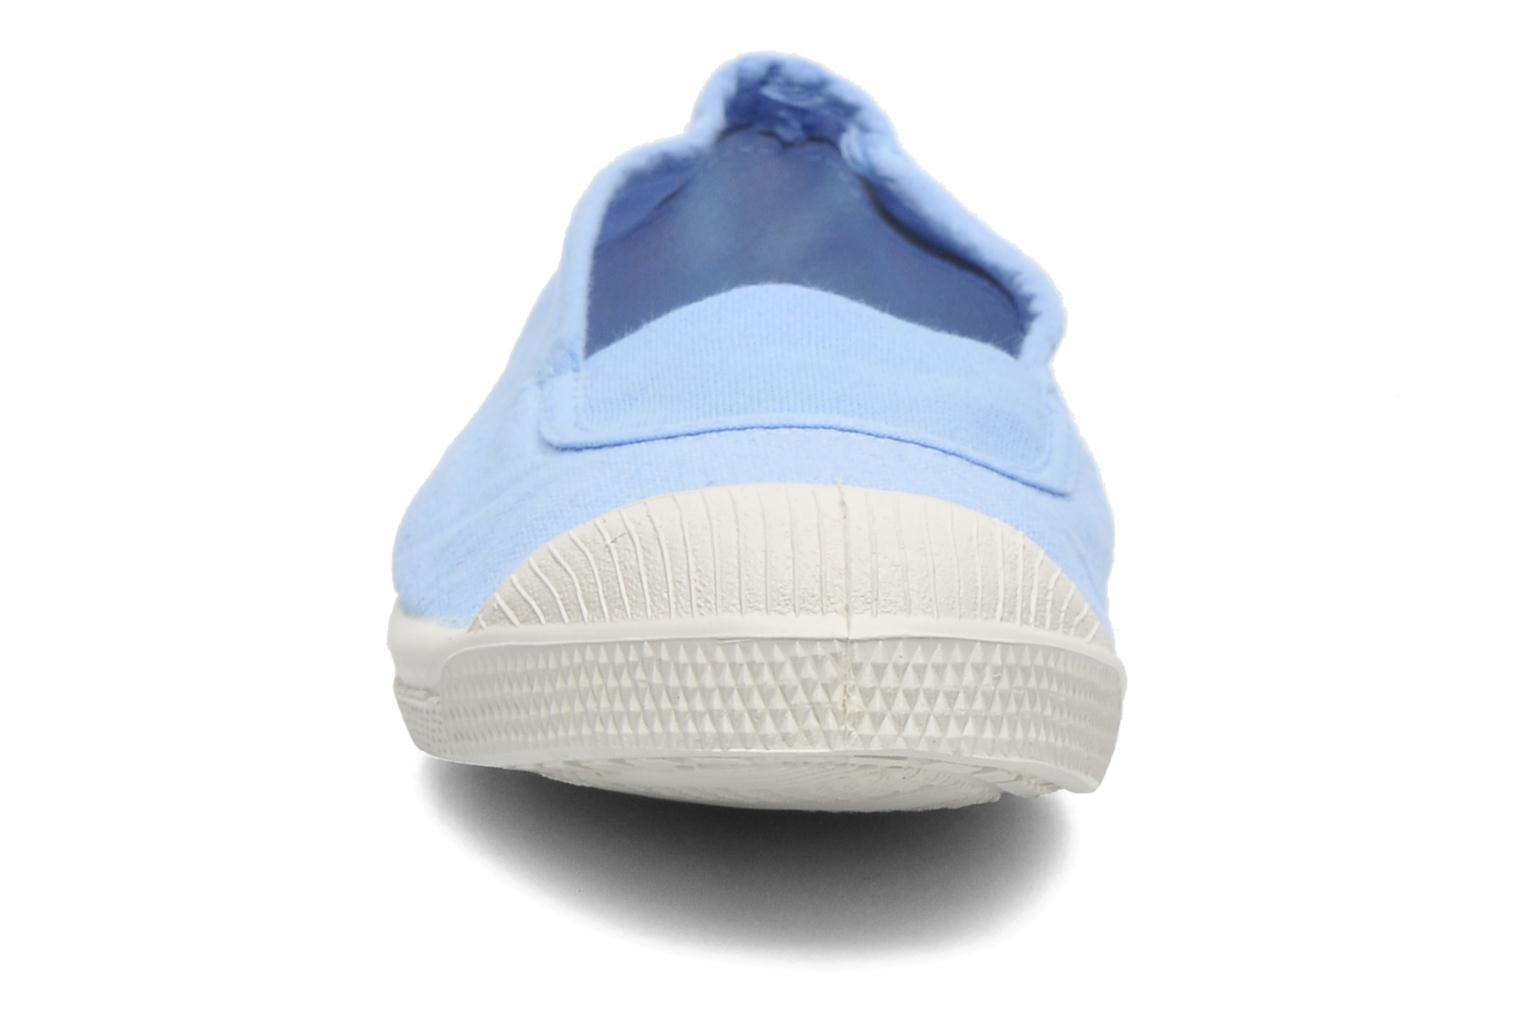 Tennis Elastique E Bleu Oxford